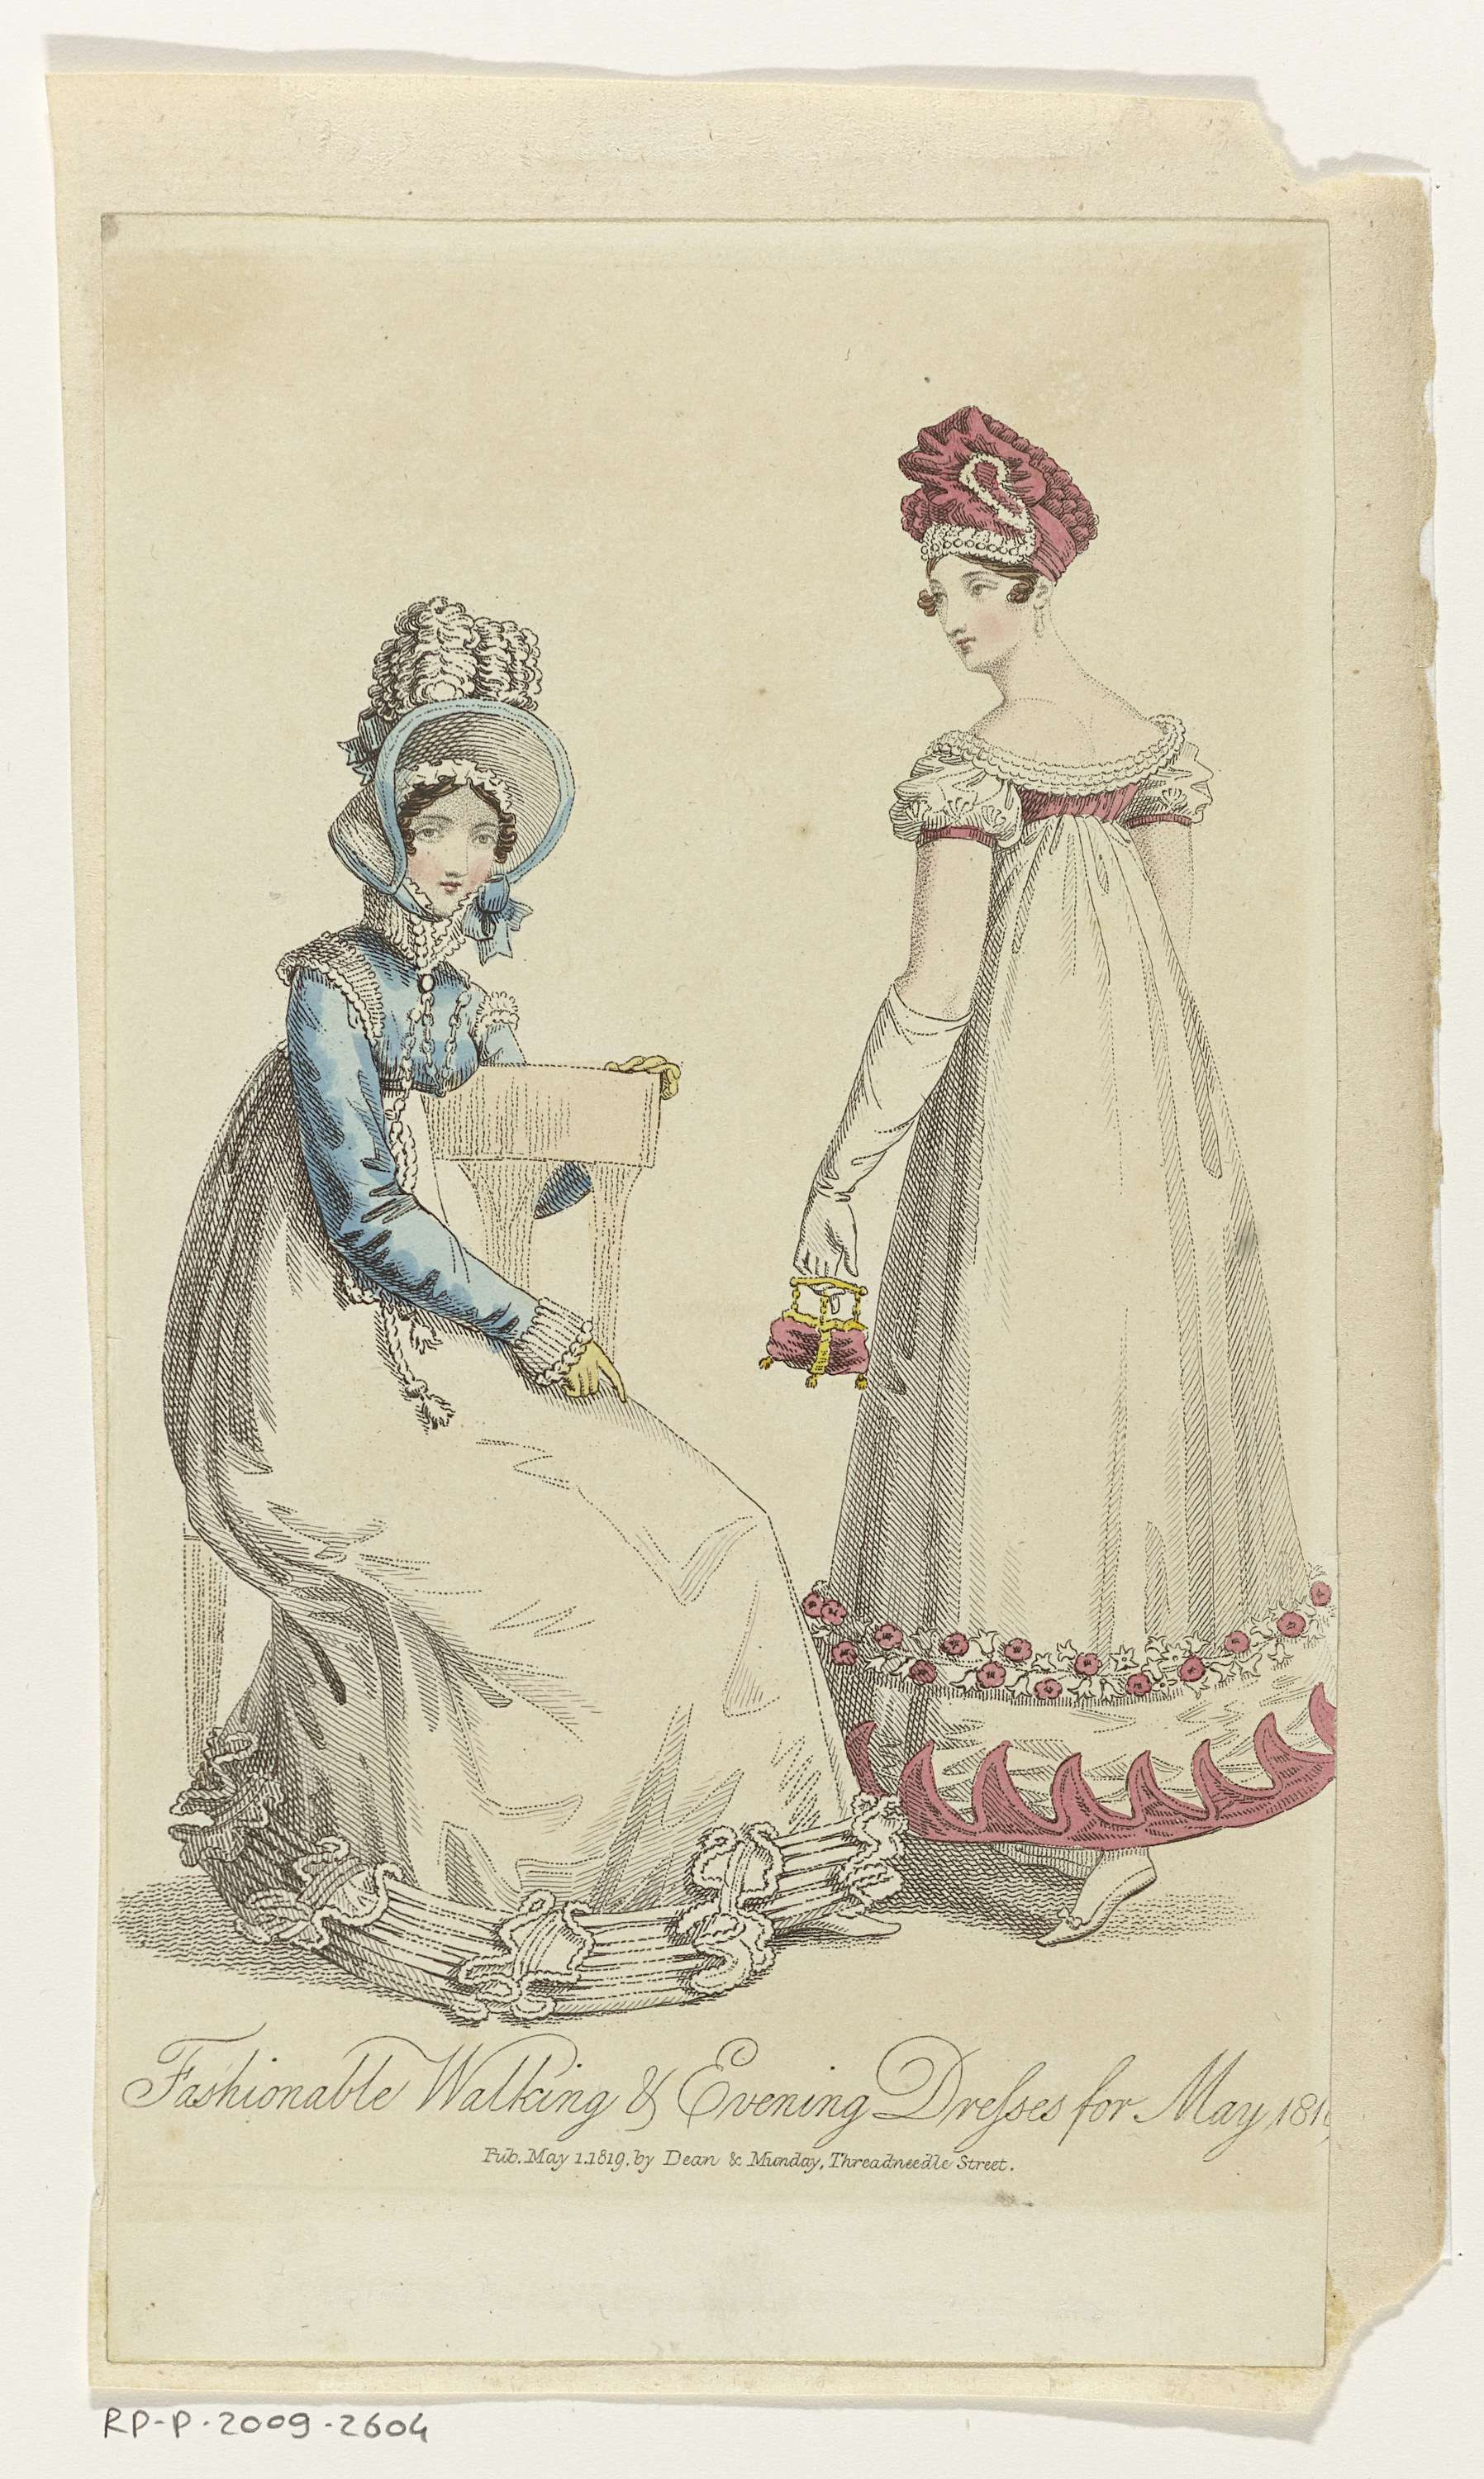 Fashionable Walking & Evening Dresses for May 1819